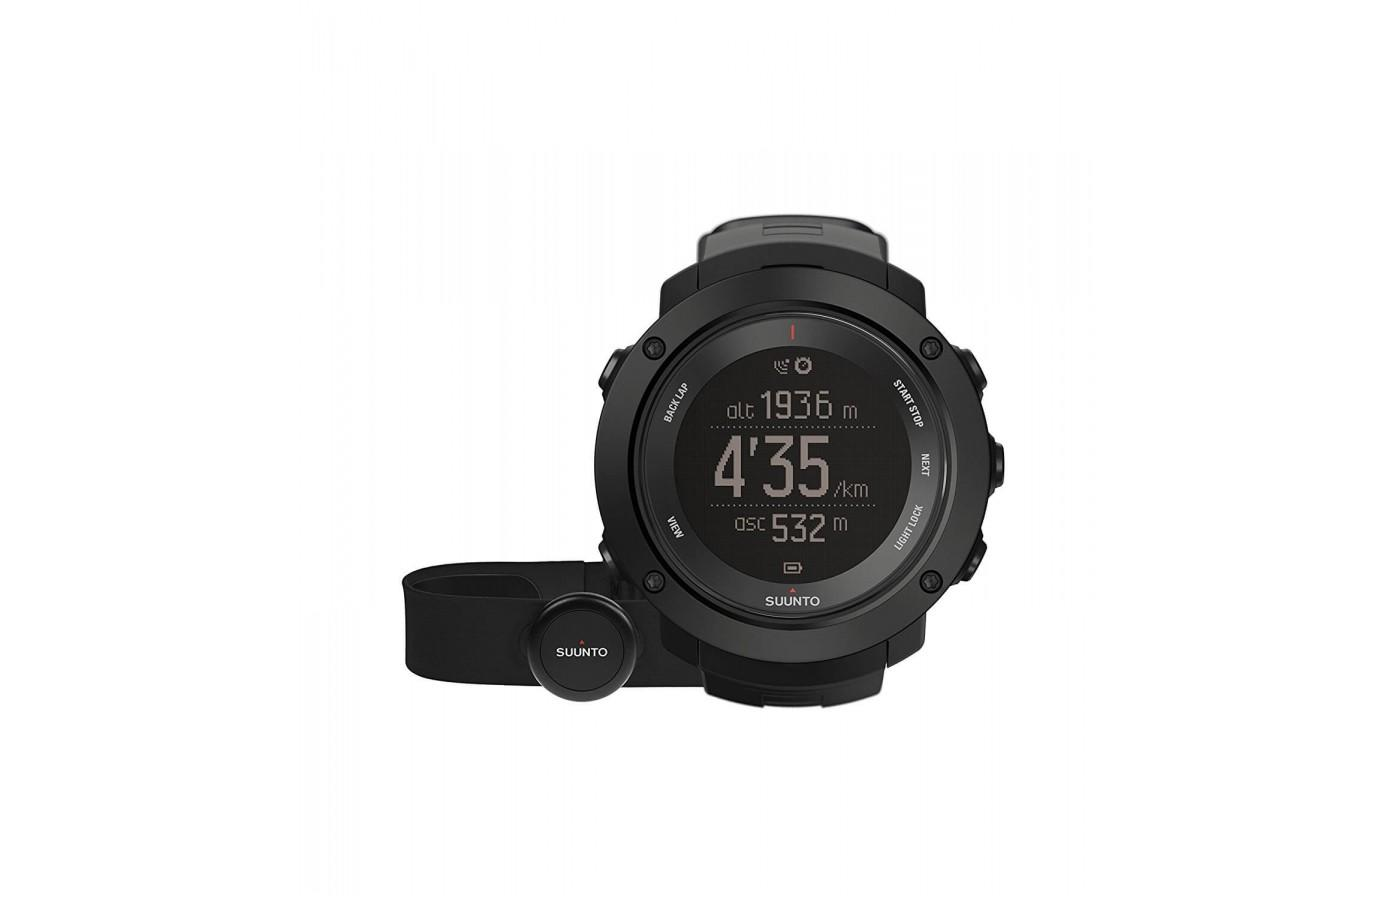 Suunto Ambit3 Vertical comes with a HR sensor